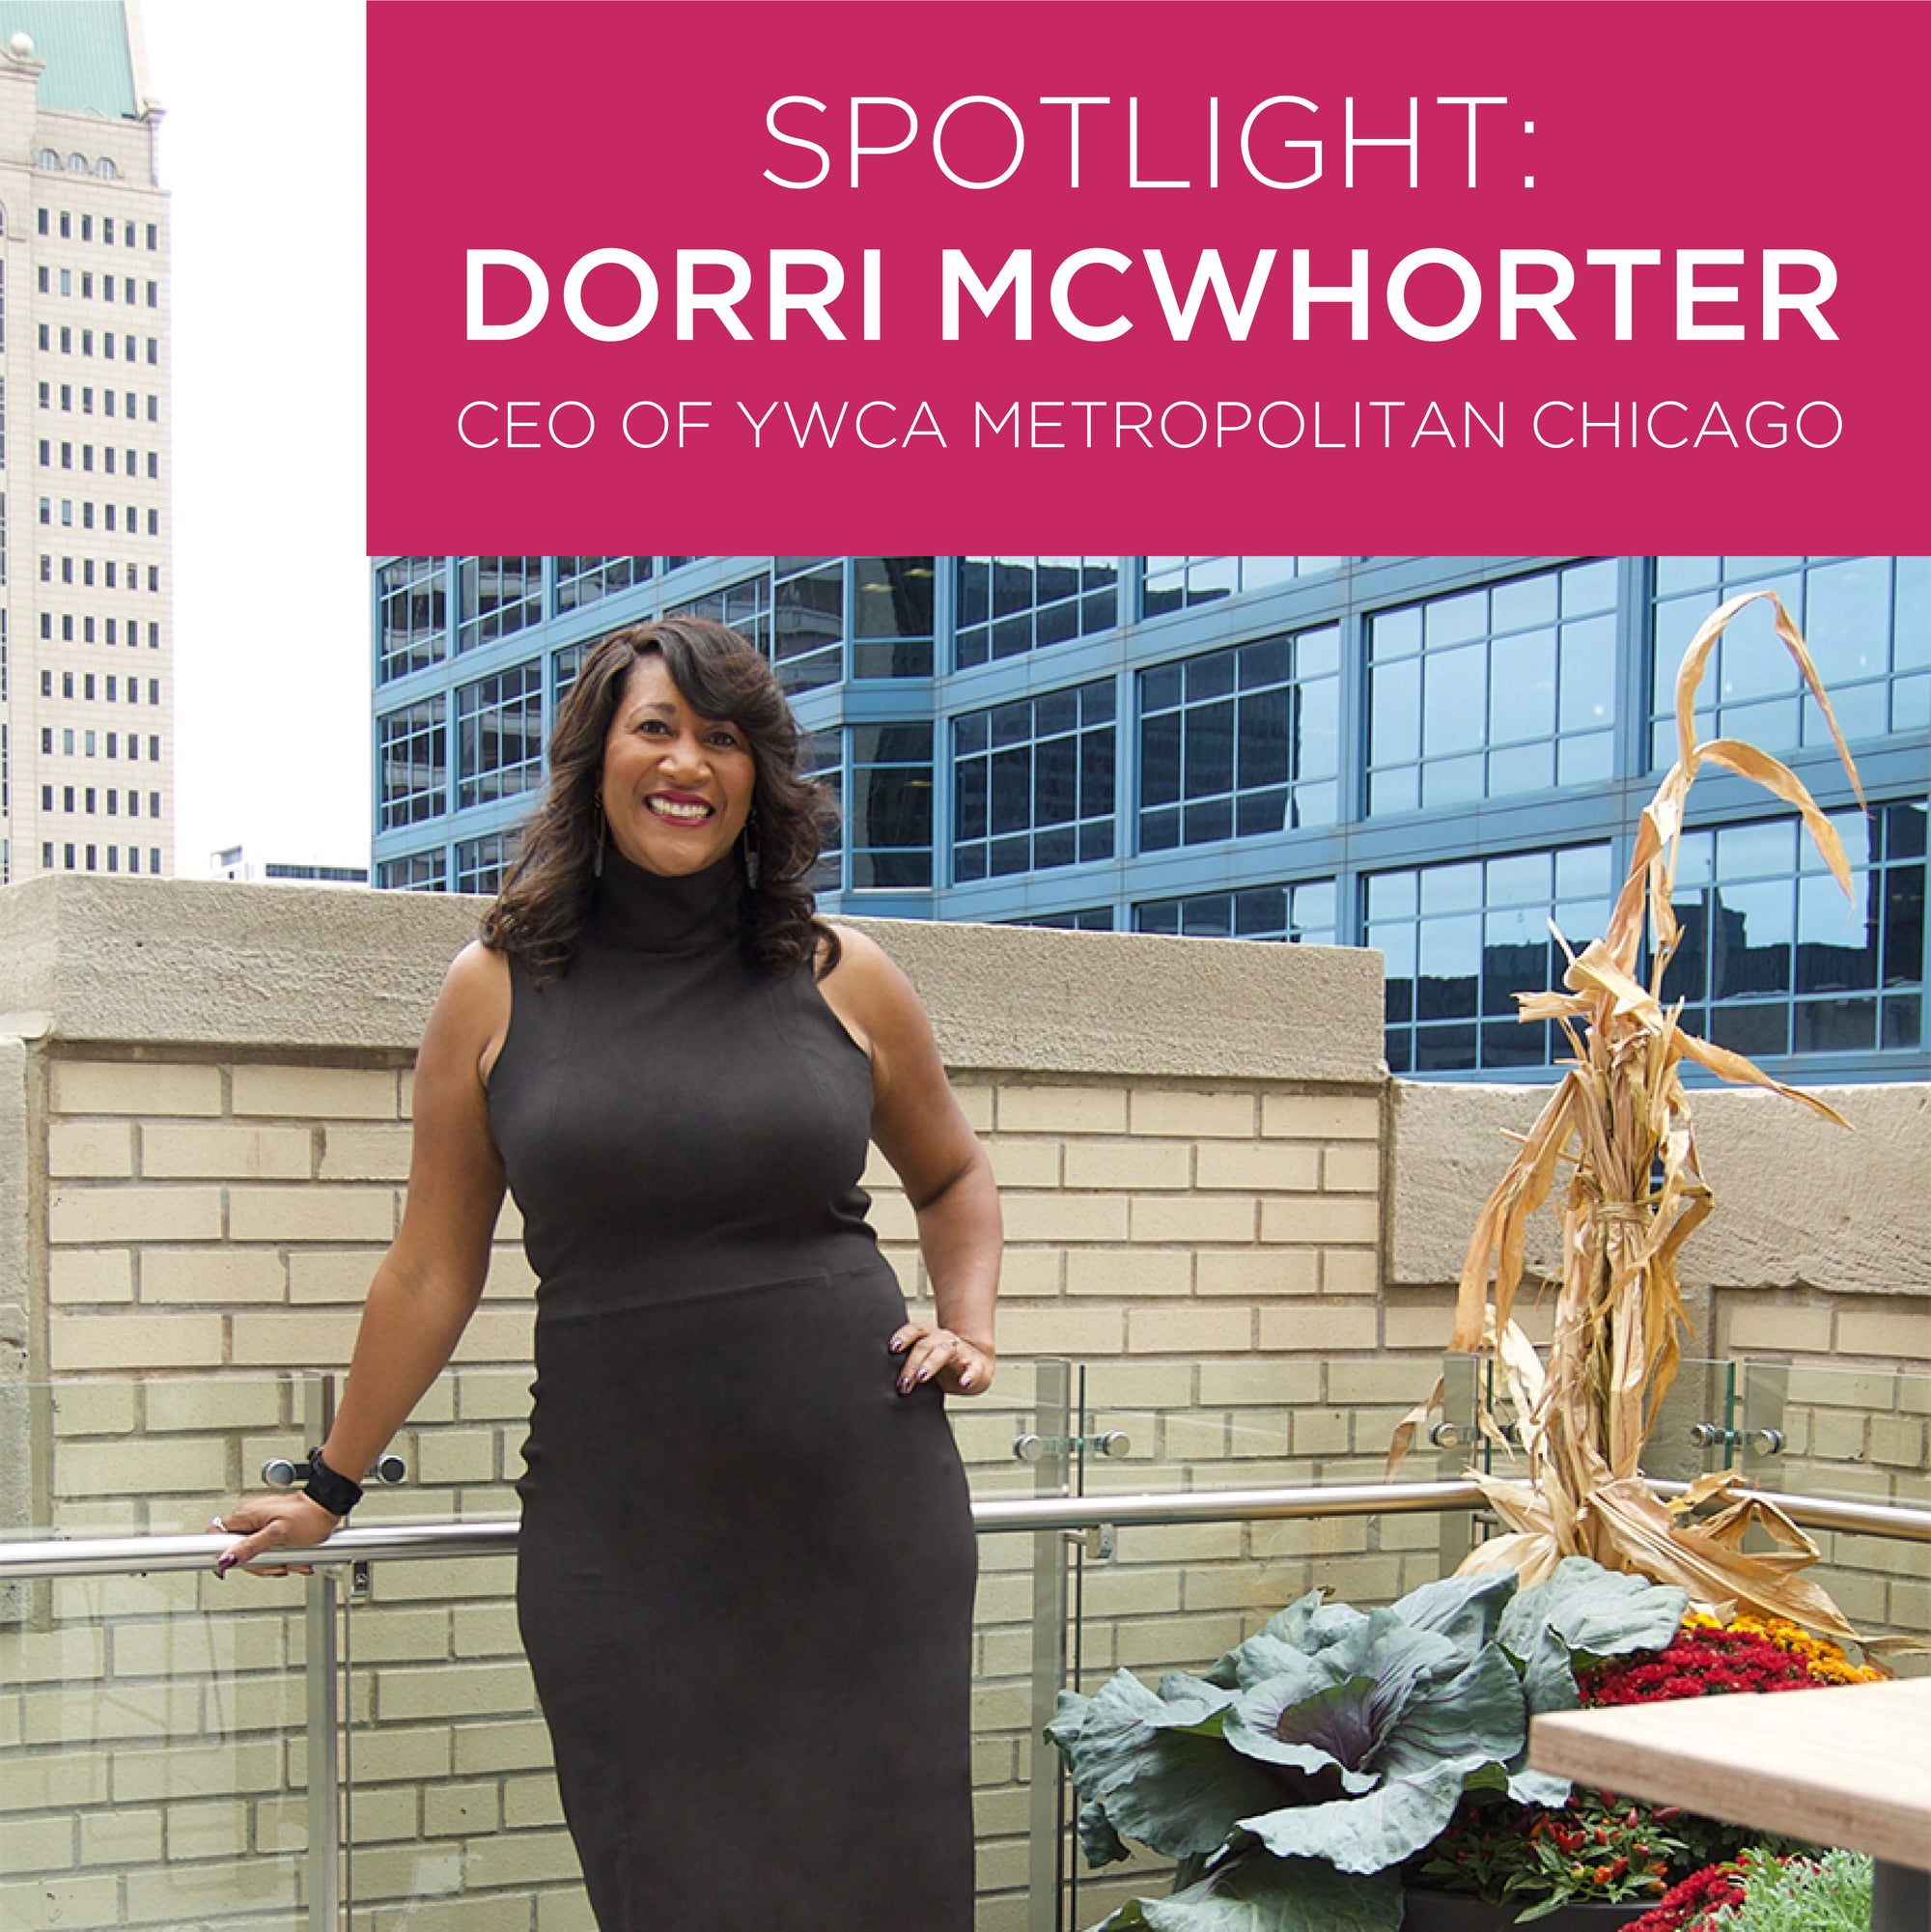 YWCA's Dorri McWhorter Leads with Joy